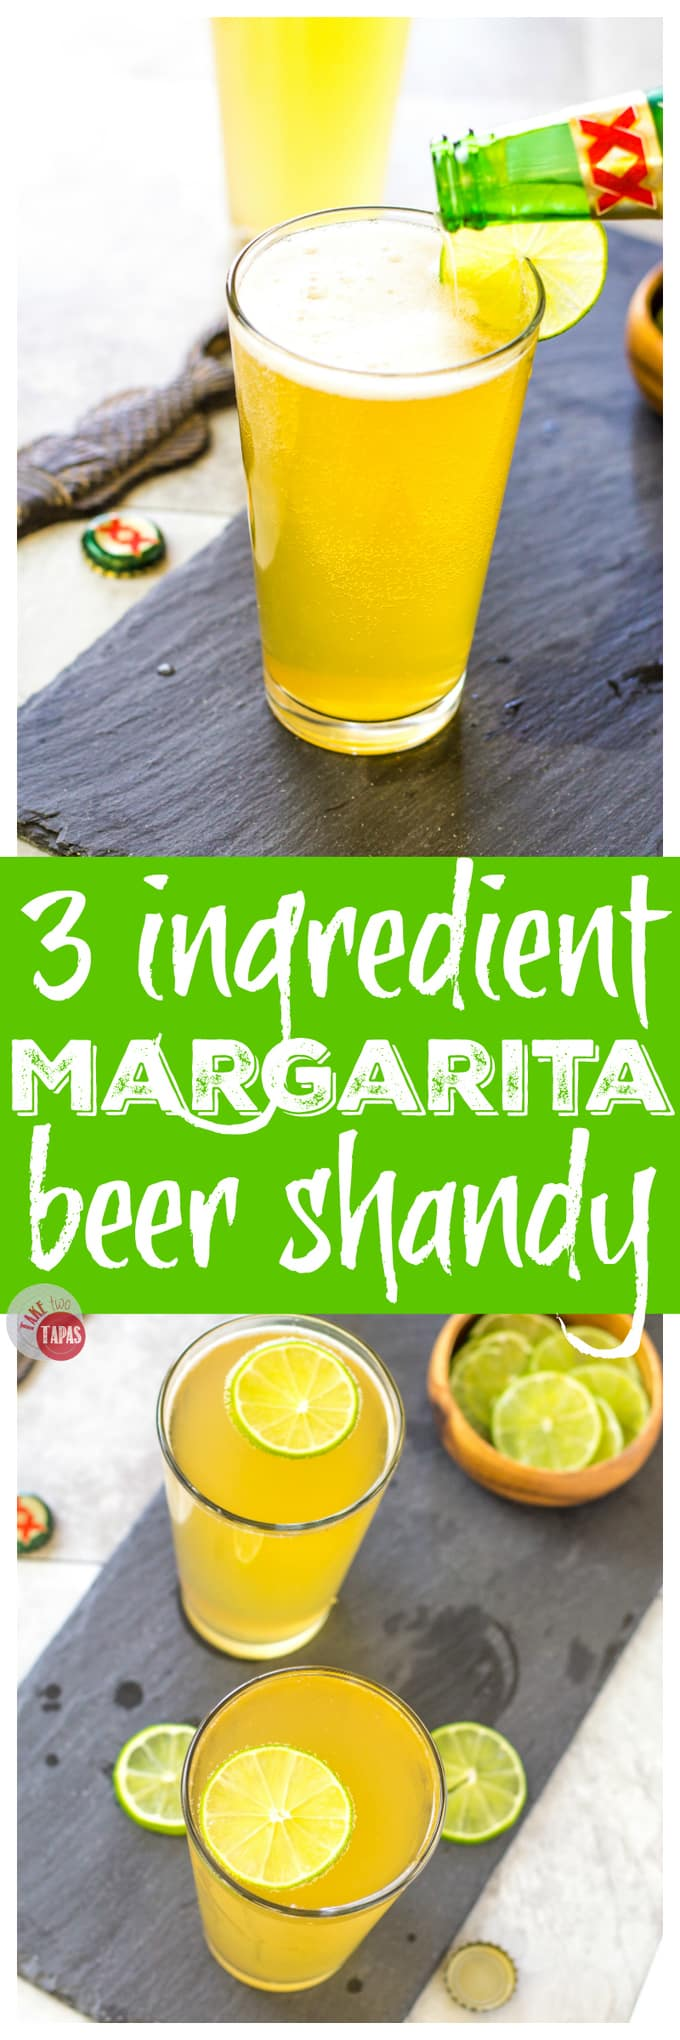 Margarita Beer Shandy with 3 Ingredients | Take Two Tapas